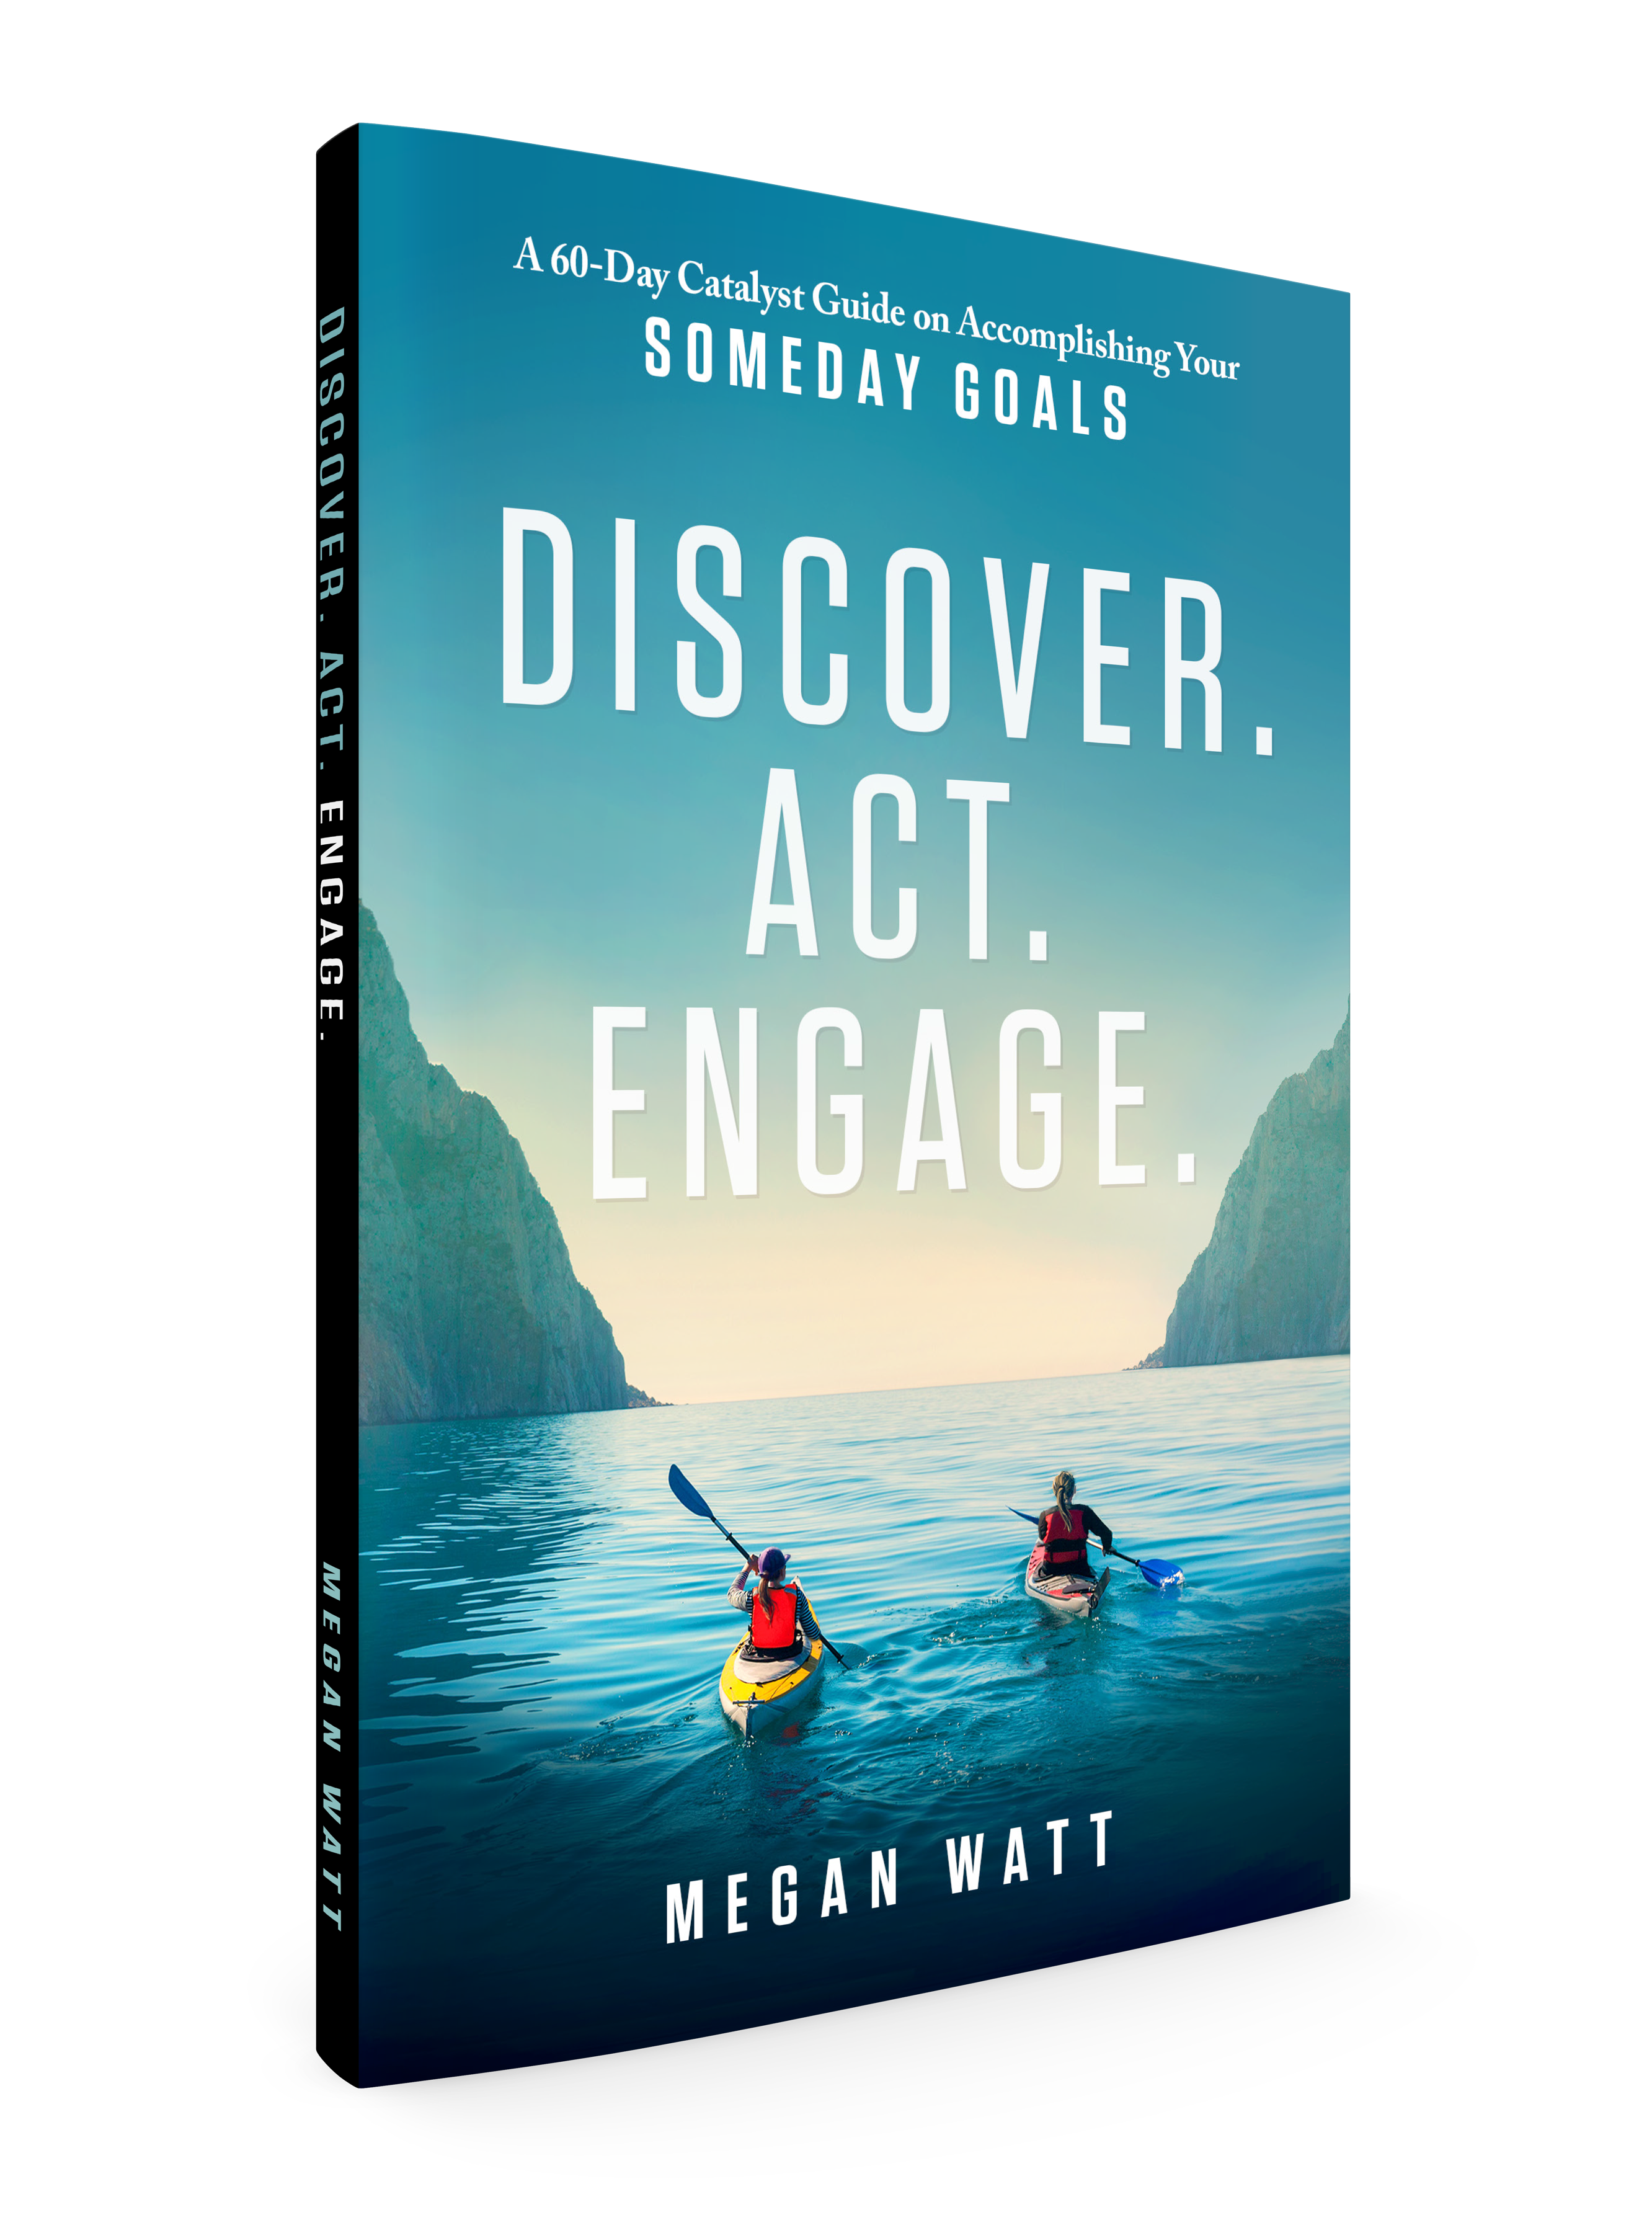 Discover. Act. Engage. 3D Book Cover